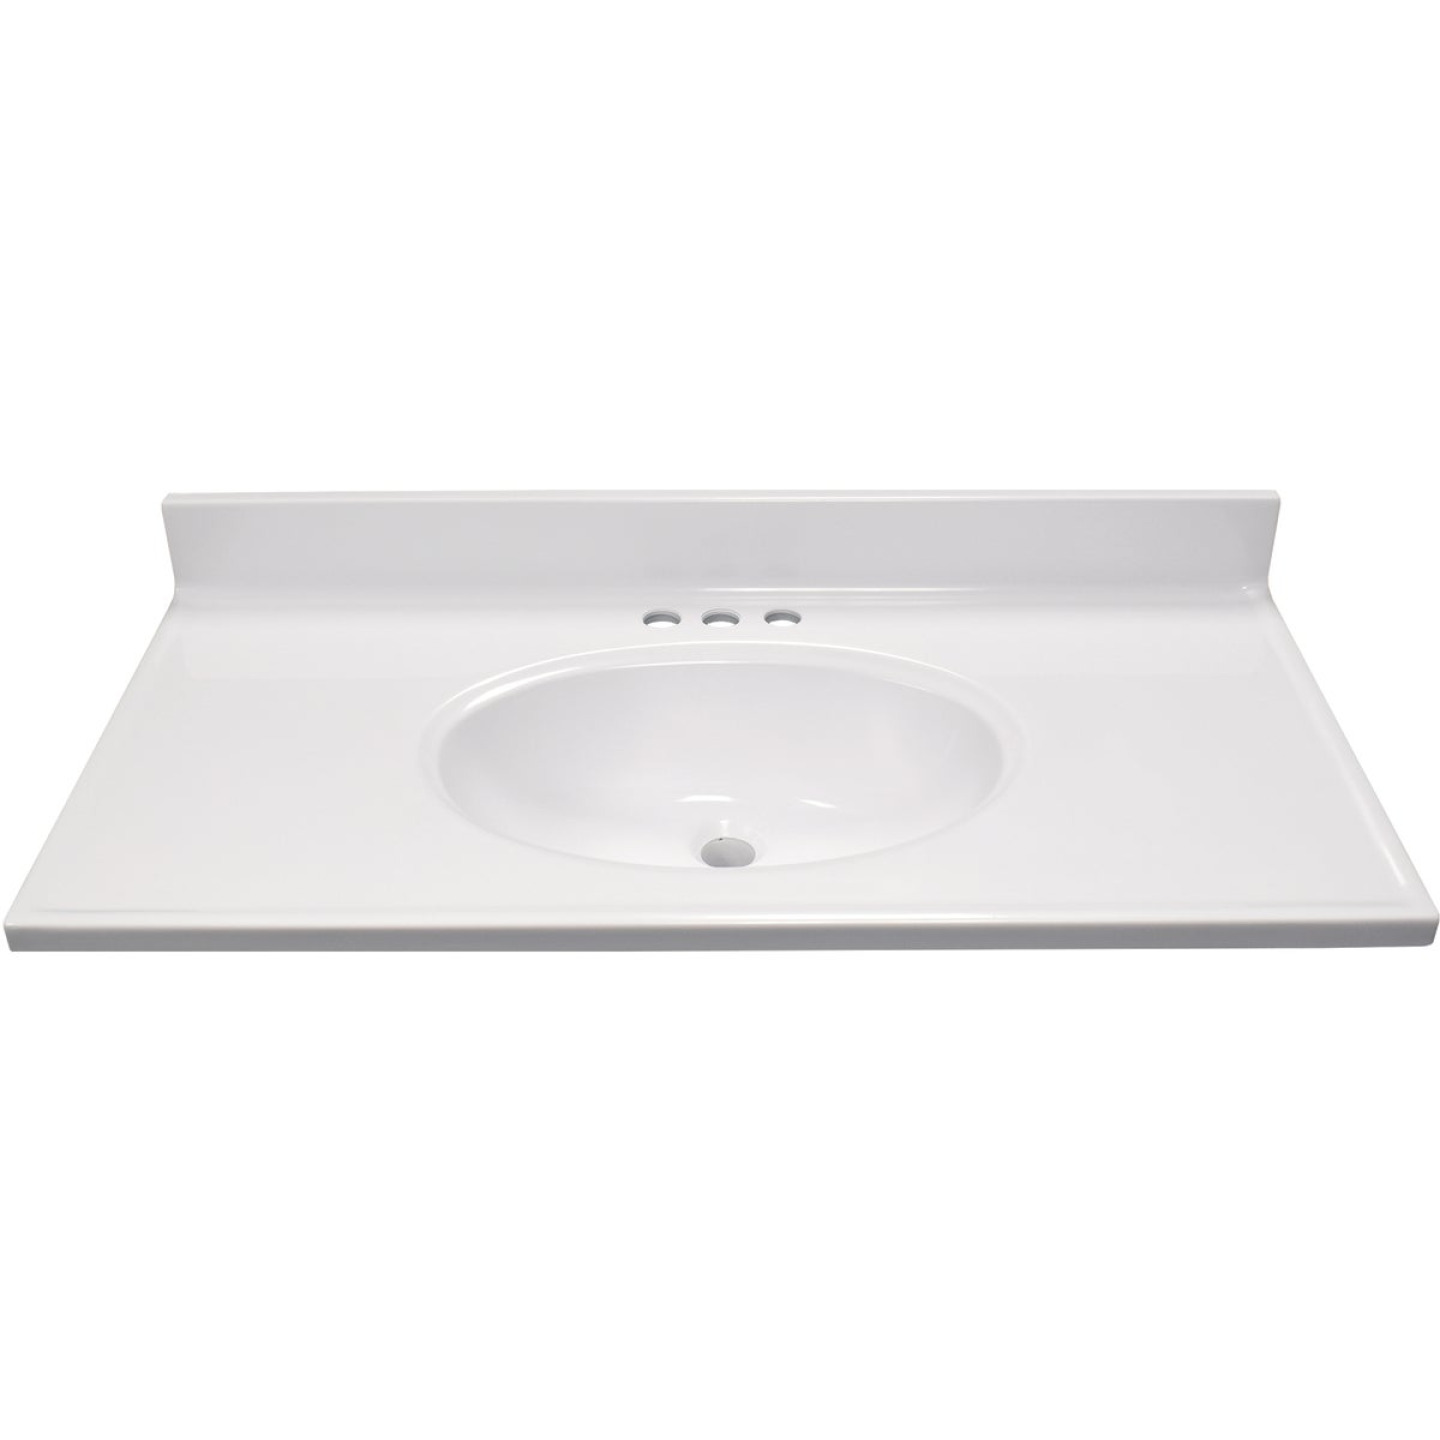 Modular Vanity Tops 37 In. W x 19 In. D Solid White Cultured Marble Non-Drip Edge Vanity Top with Oval Bowl Image 2